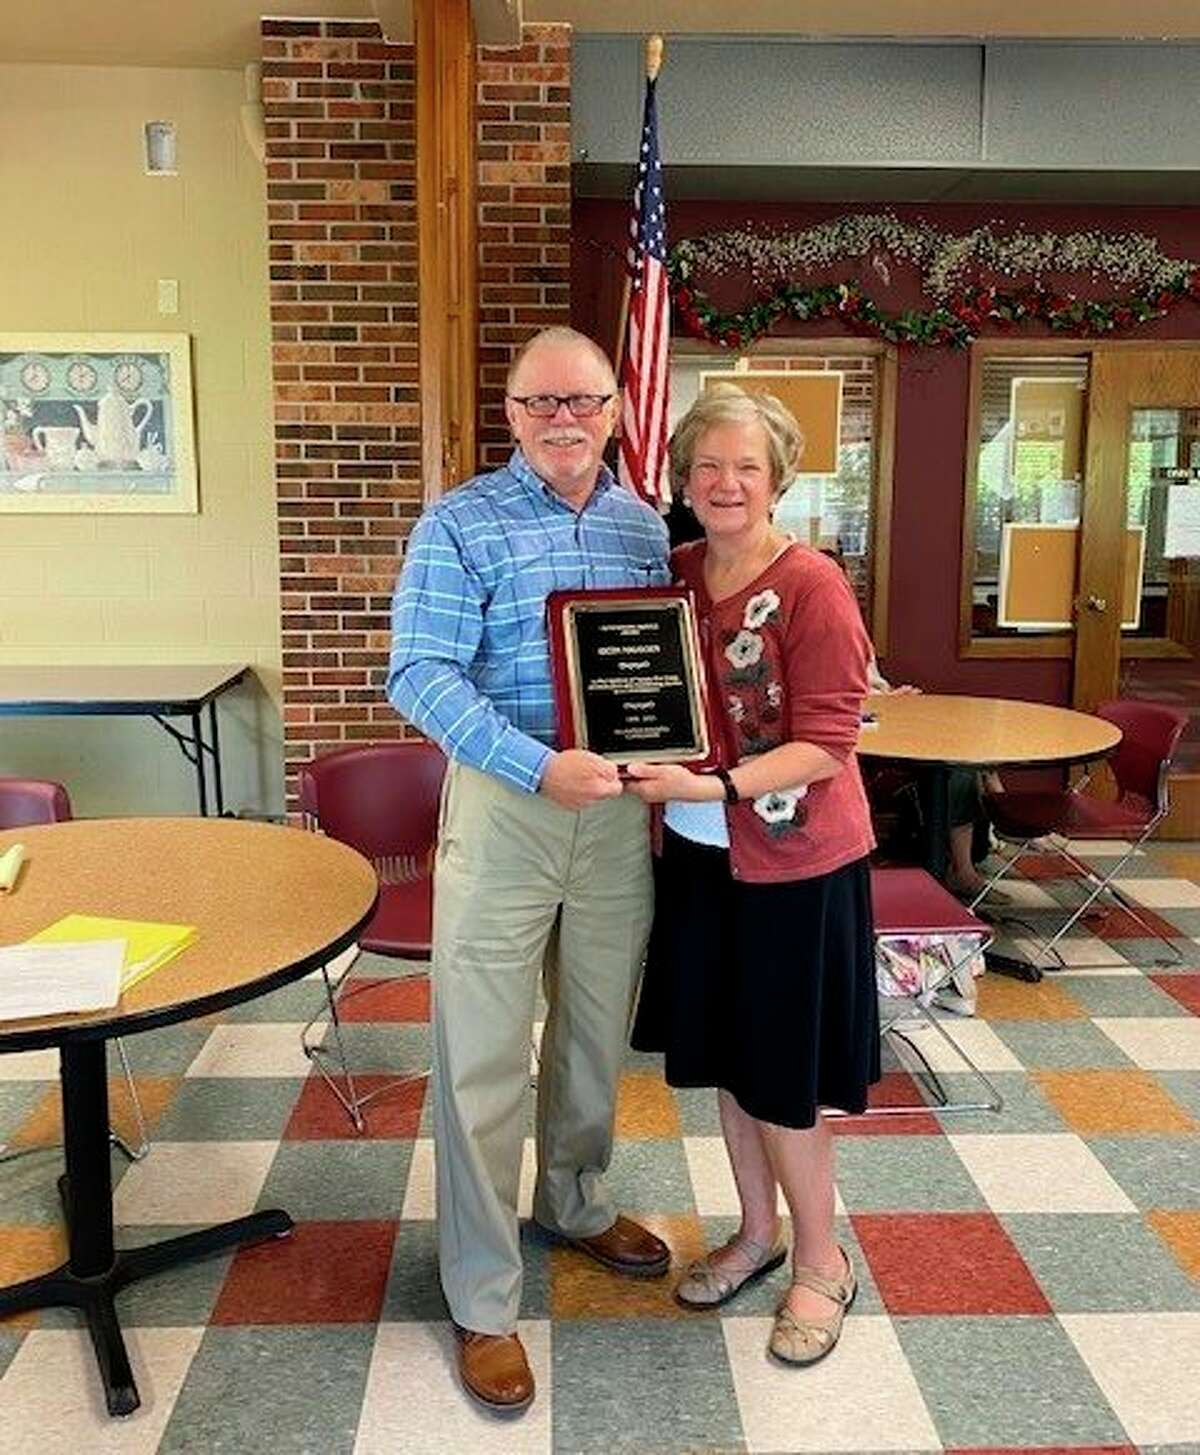 Pictured is Big Rapids Housing Commission President, Dan Farrow, presenting Beth Krueger with a plaque honoring her service to the Big Rapids Housing Commission. (Submitted photo)